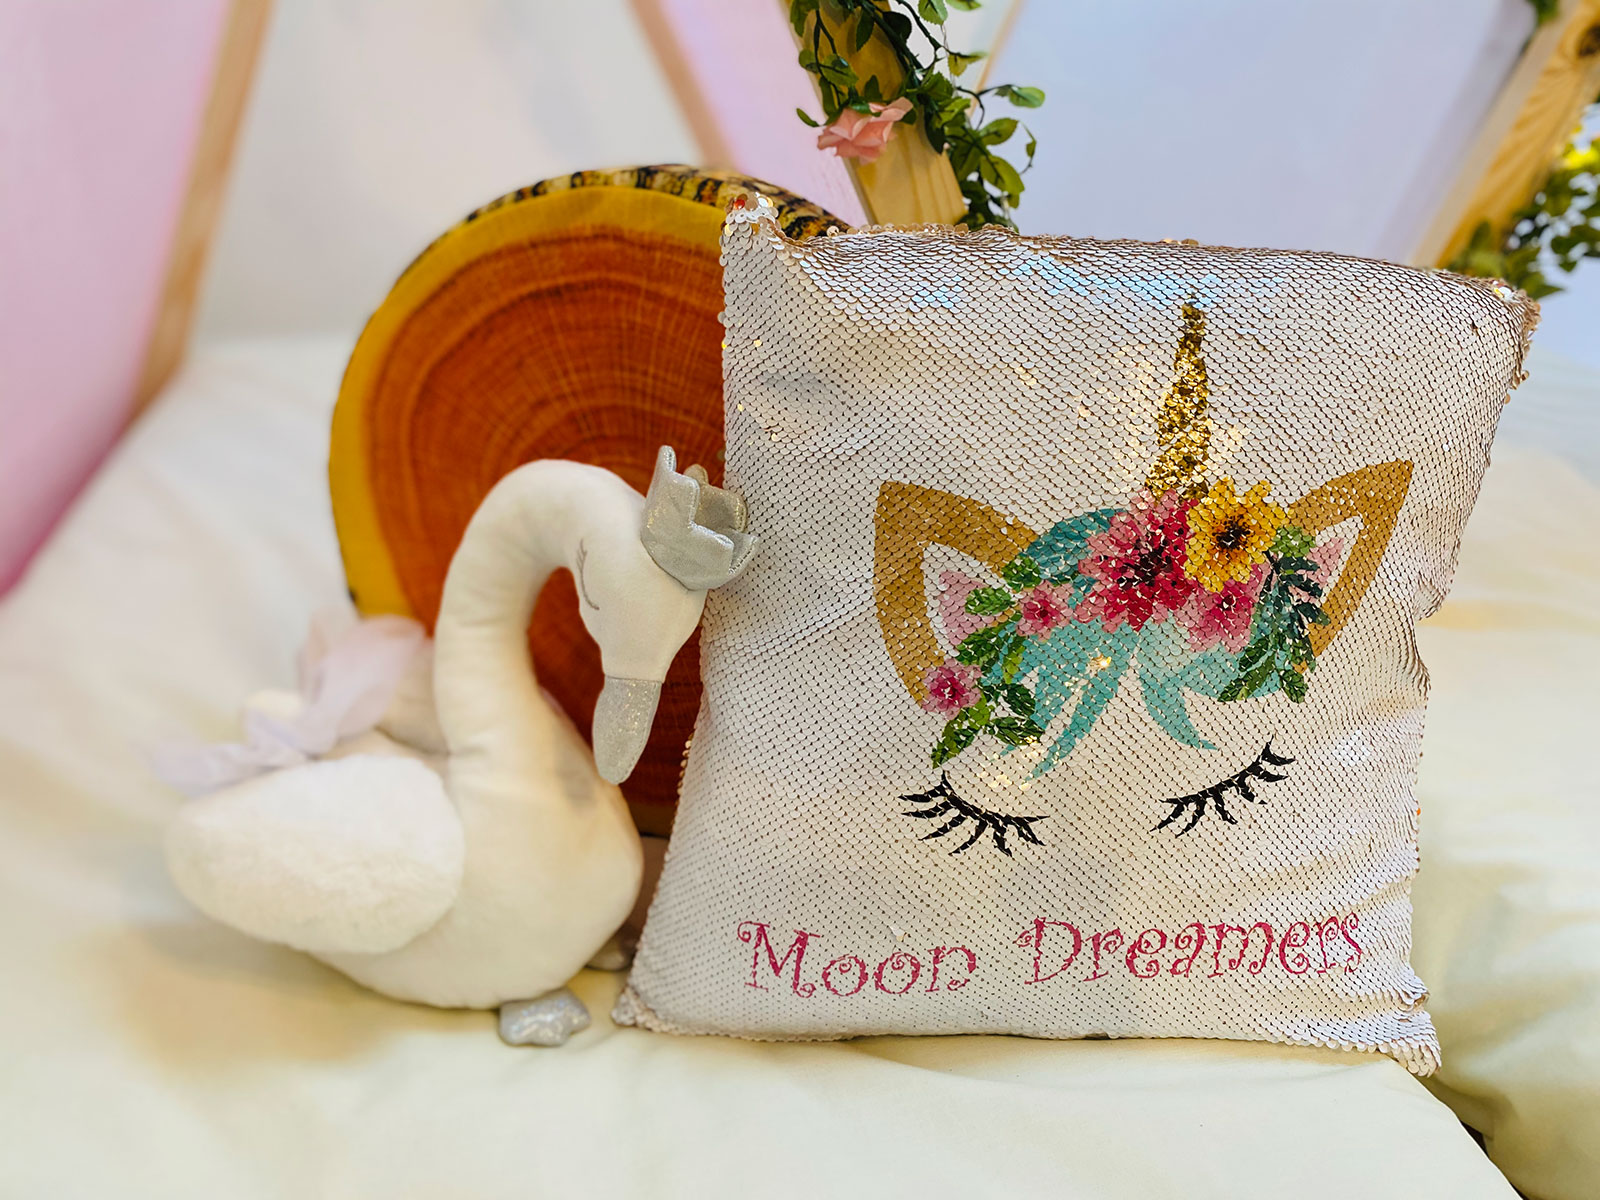 Luxury Glampovers & Children's Sleepover| Moon Dreamers